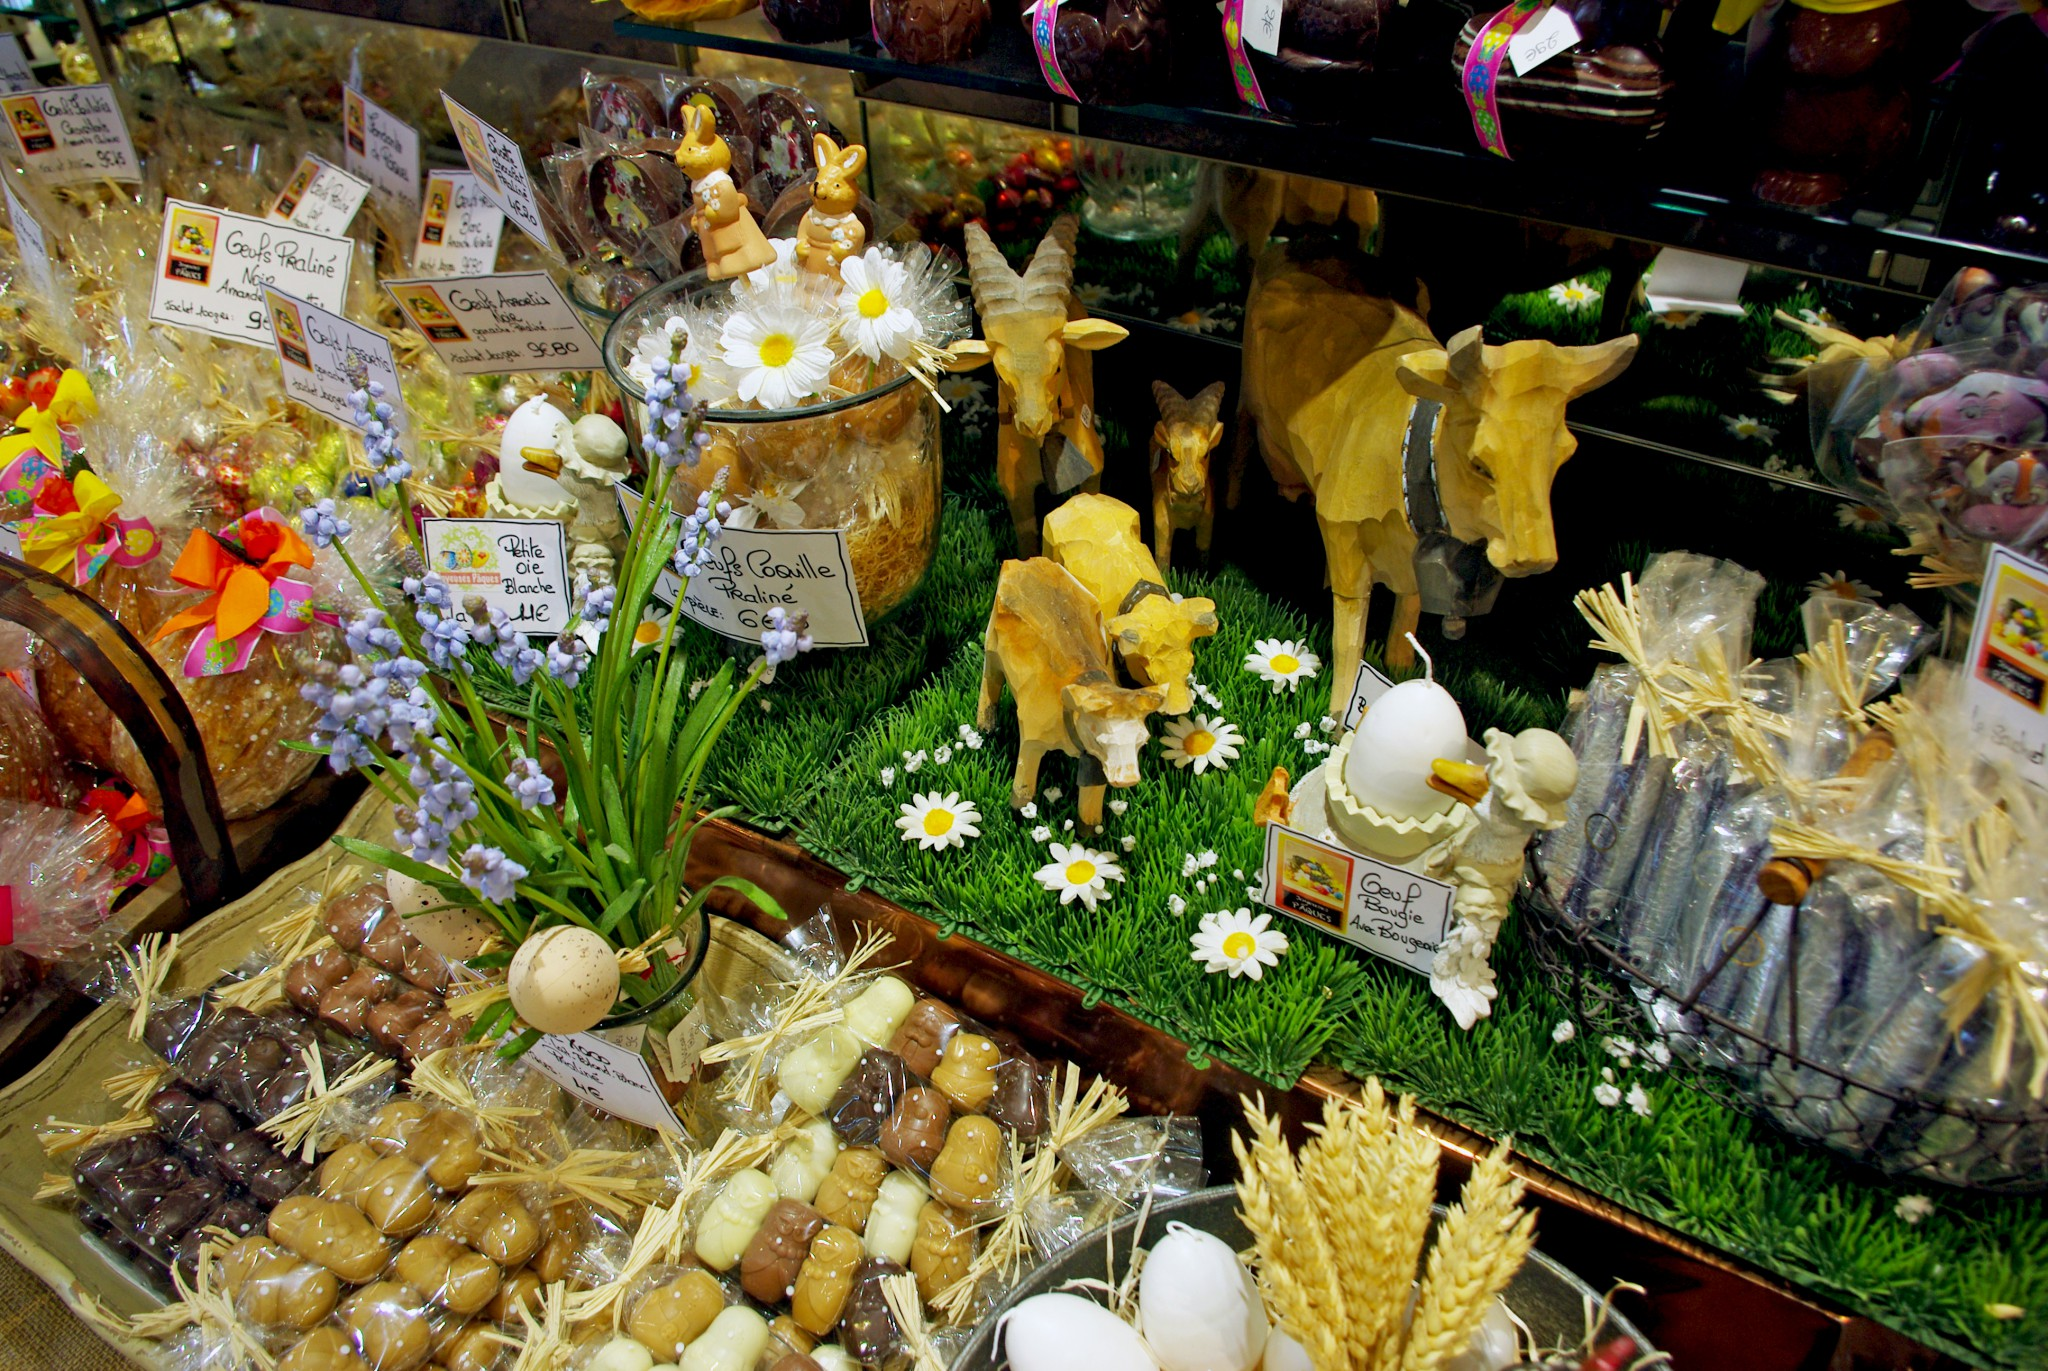 Easter decorations at Bauget in Maisons-Laffitte © French Moments